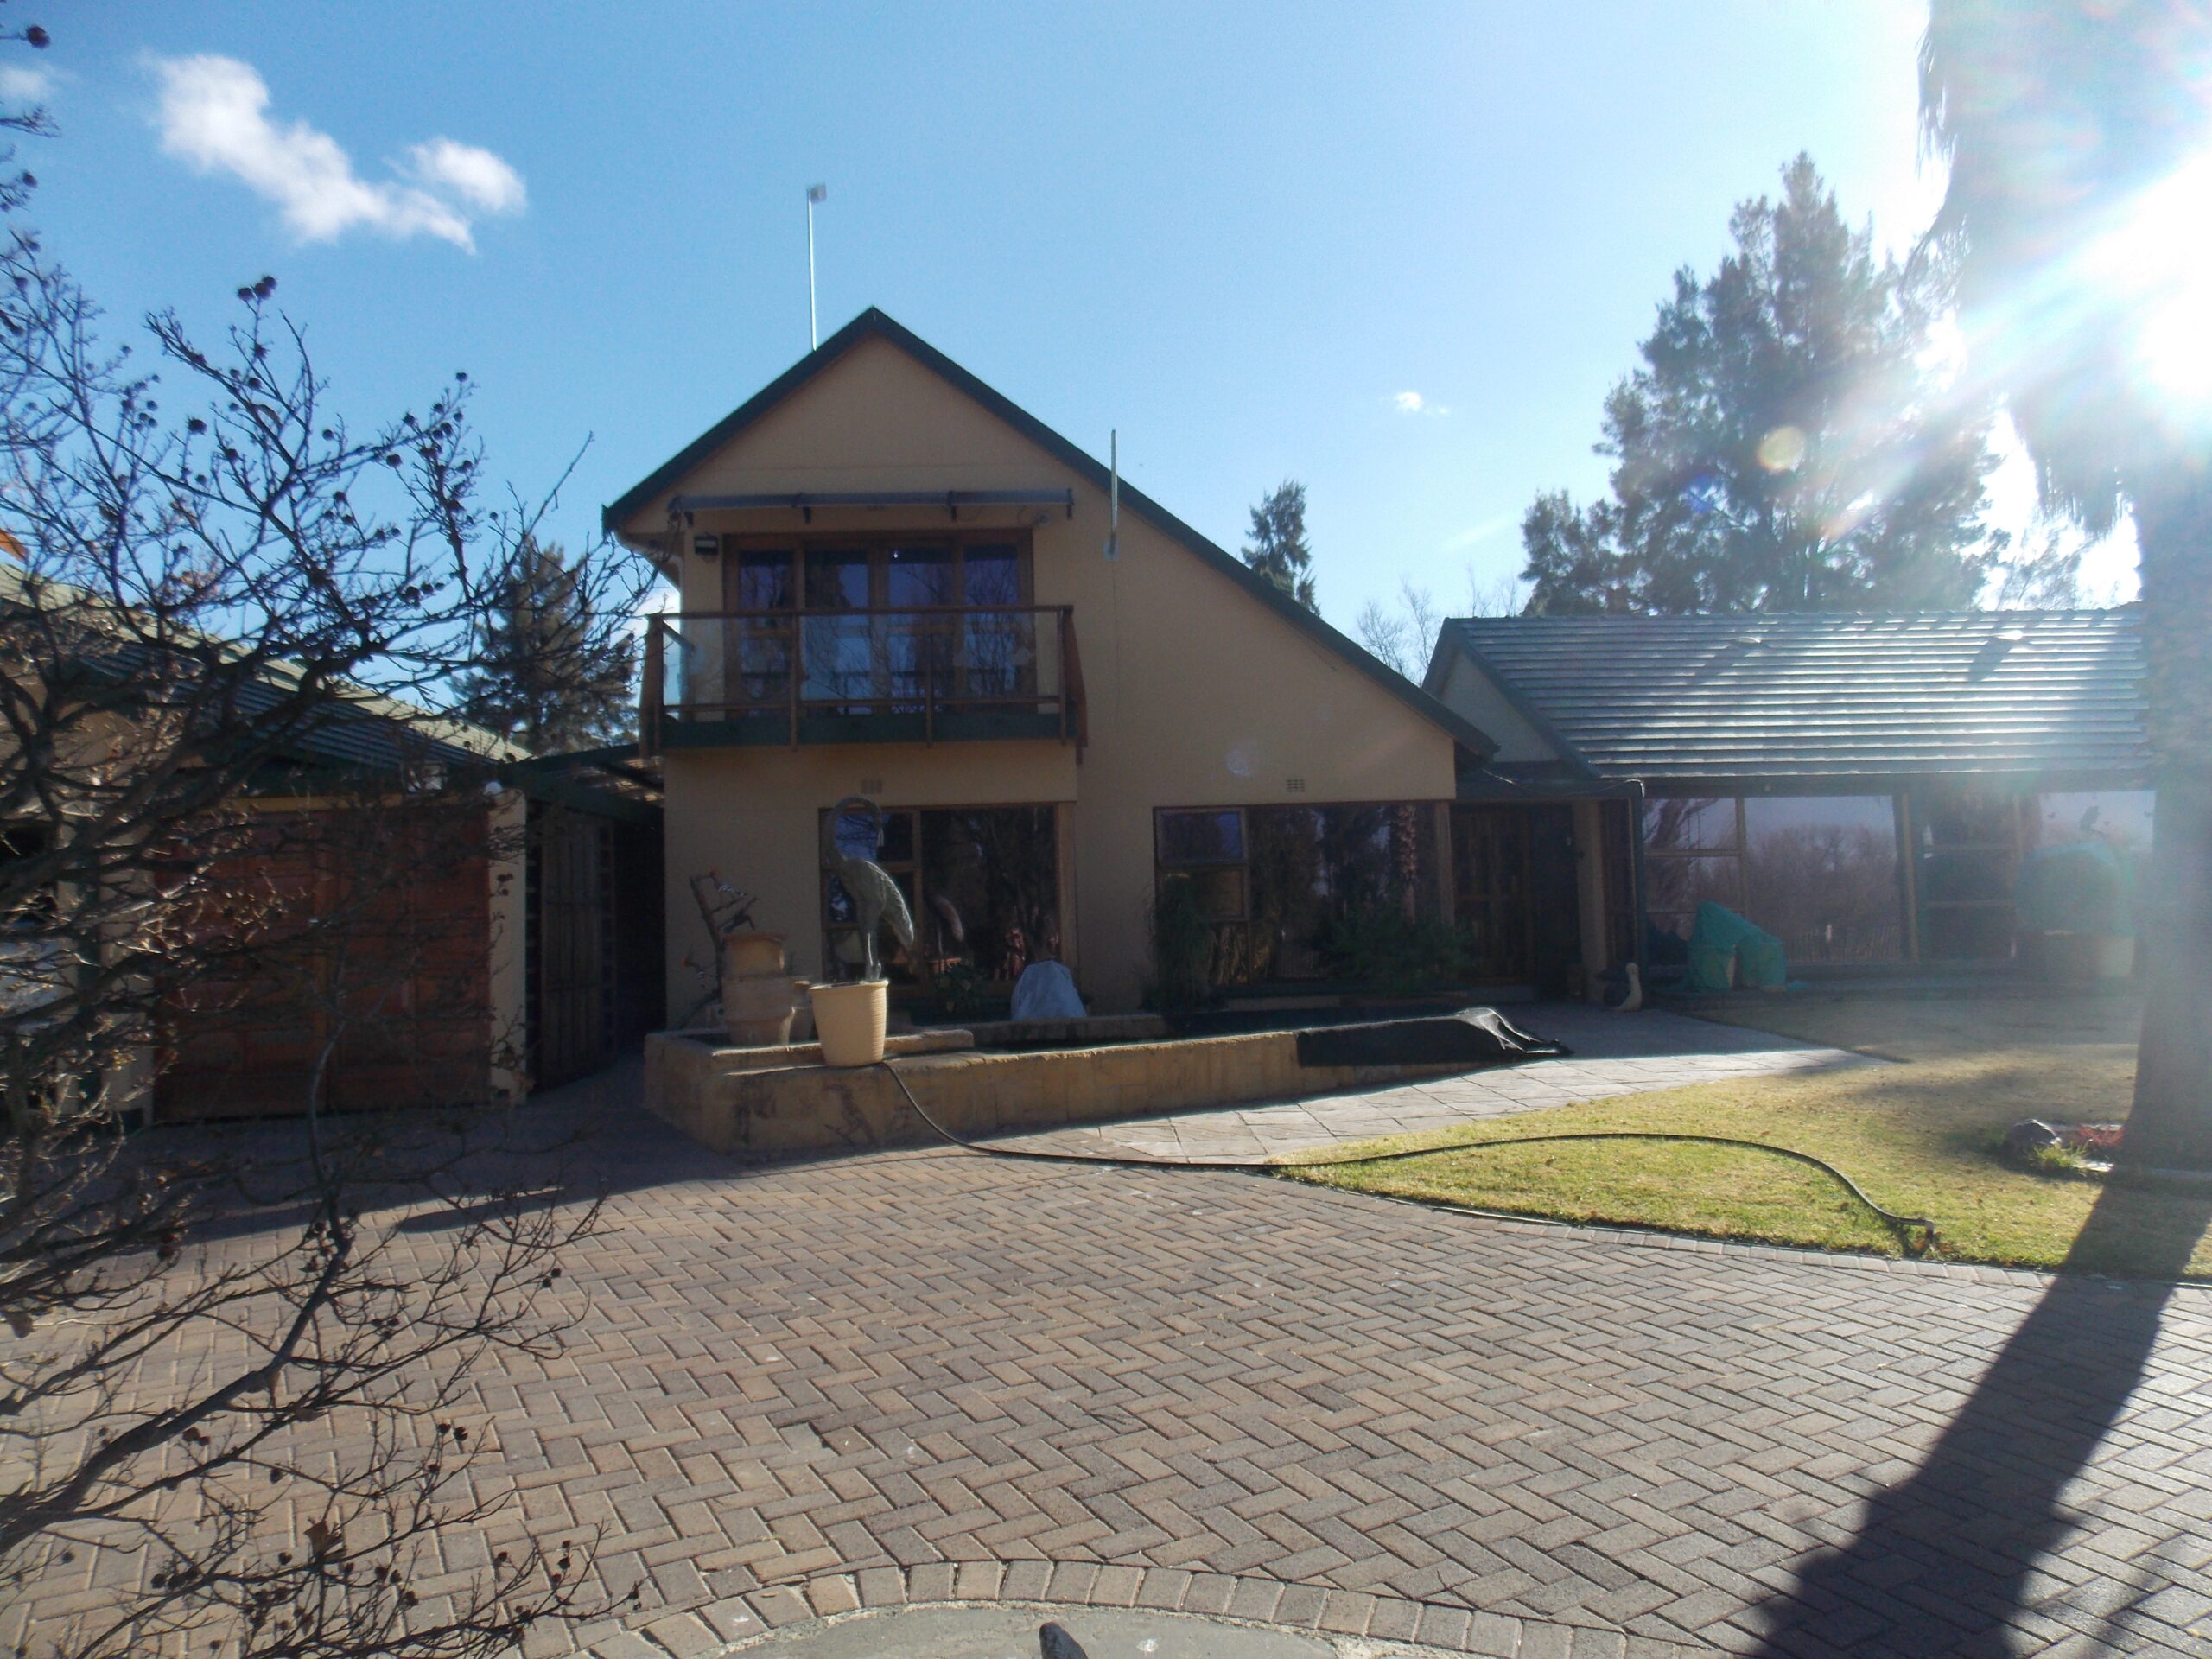 Exclusive River Property- Once in a Lifetime Property!